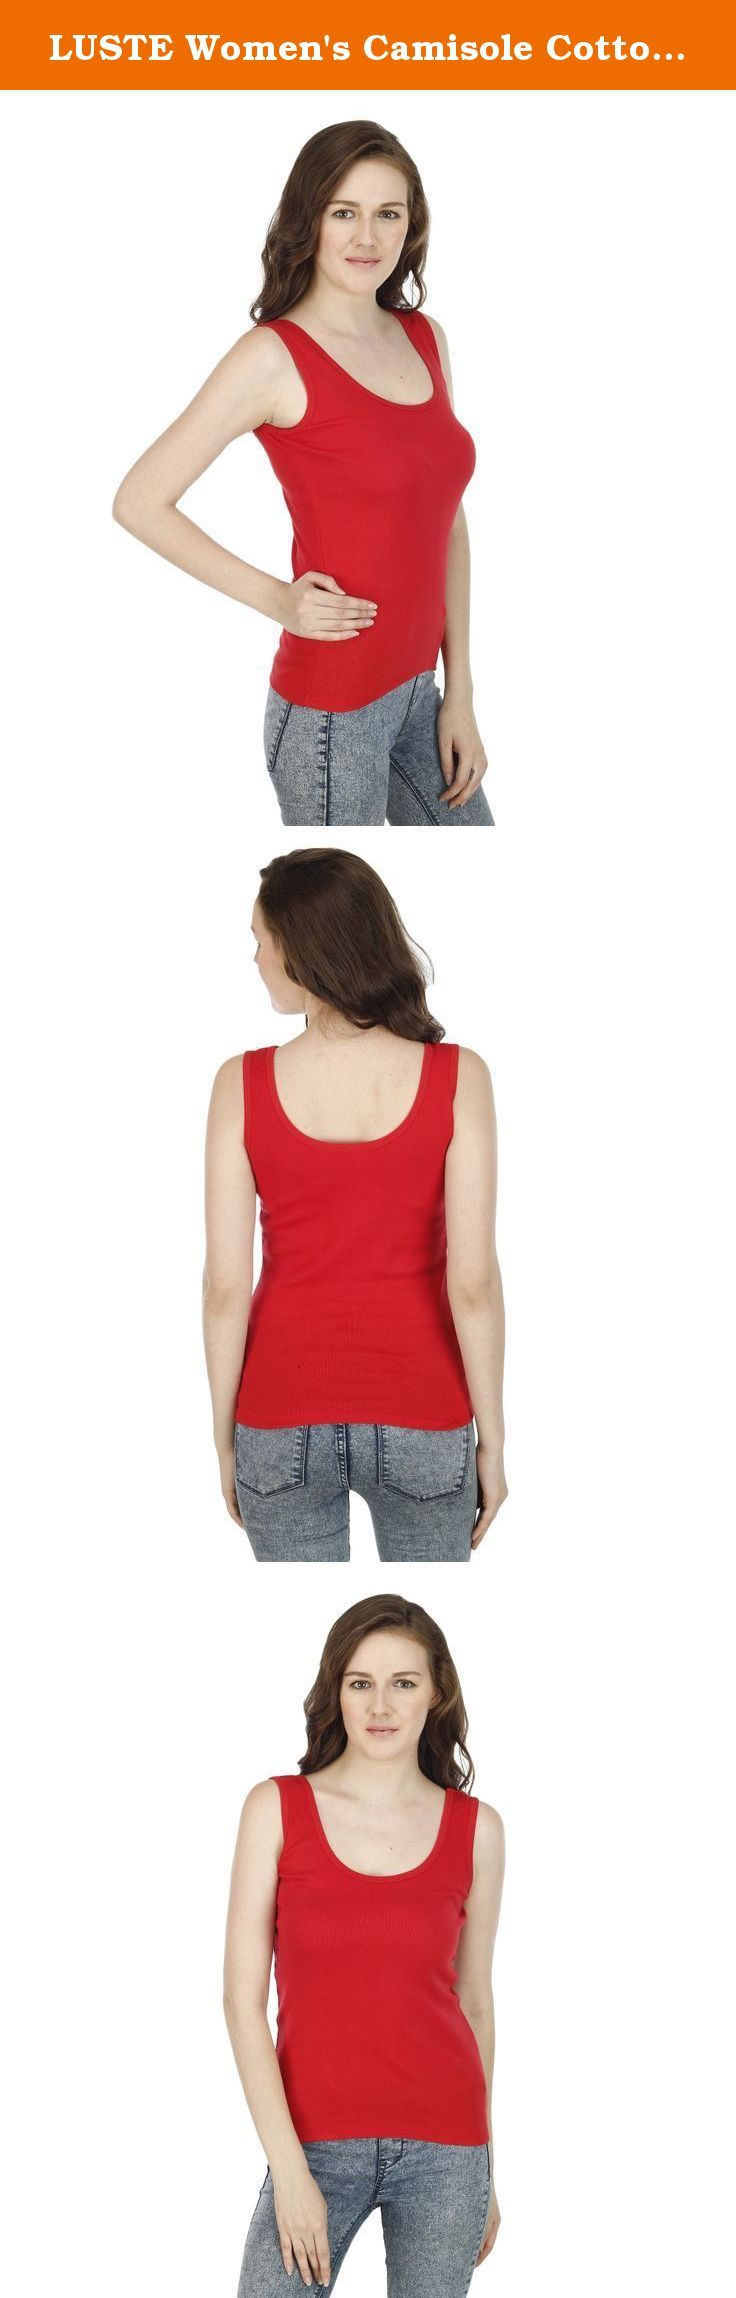 LUSTE Women's Camisole Cotton Free Size Red. Fine cotton Camisoles from our collection, designed to give you breathable and comfortable body fit. Have fun!.